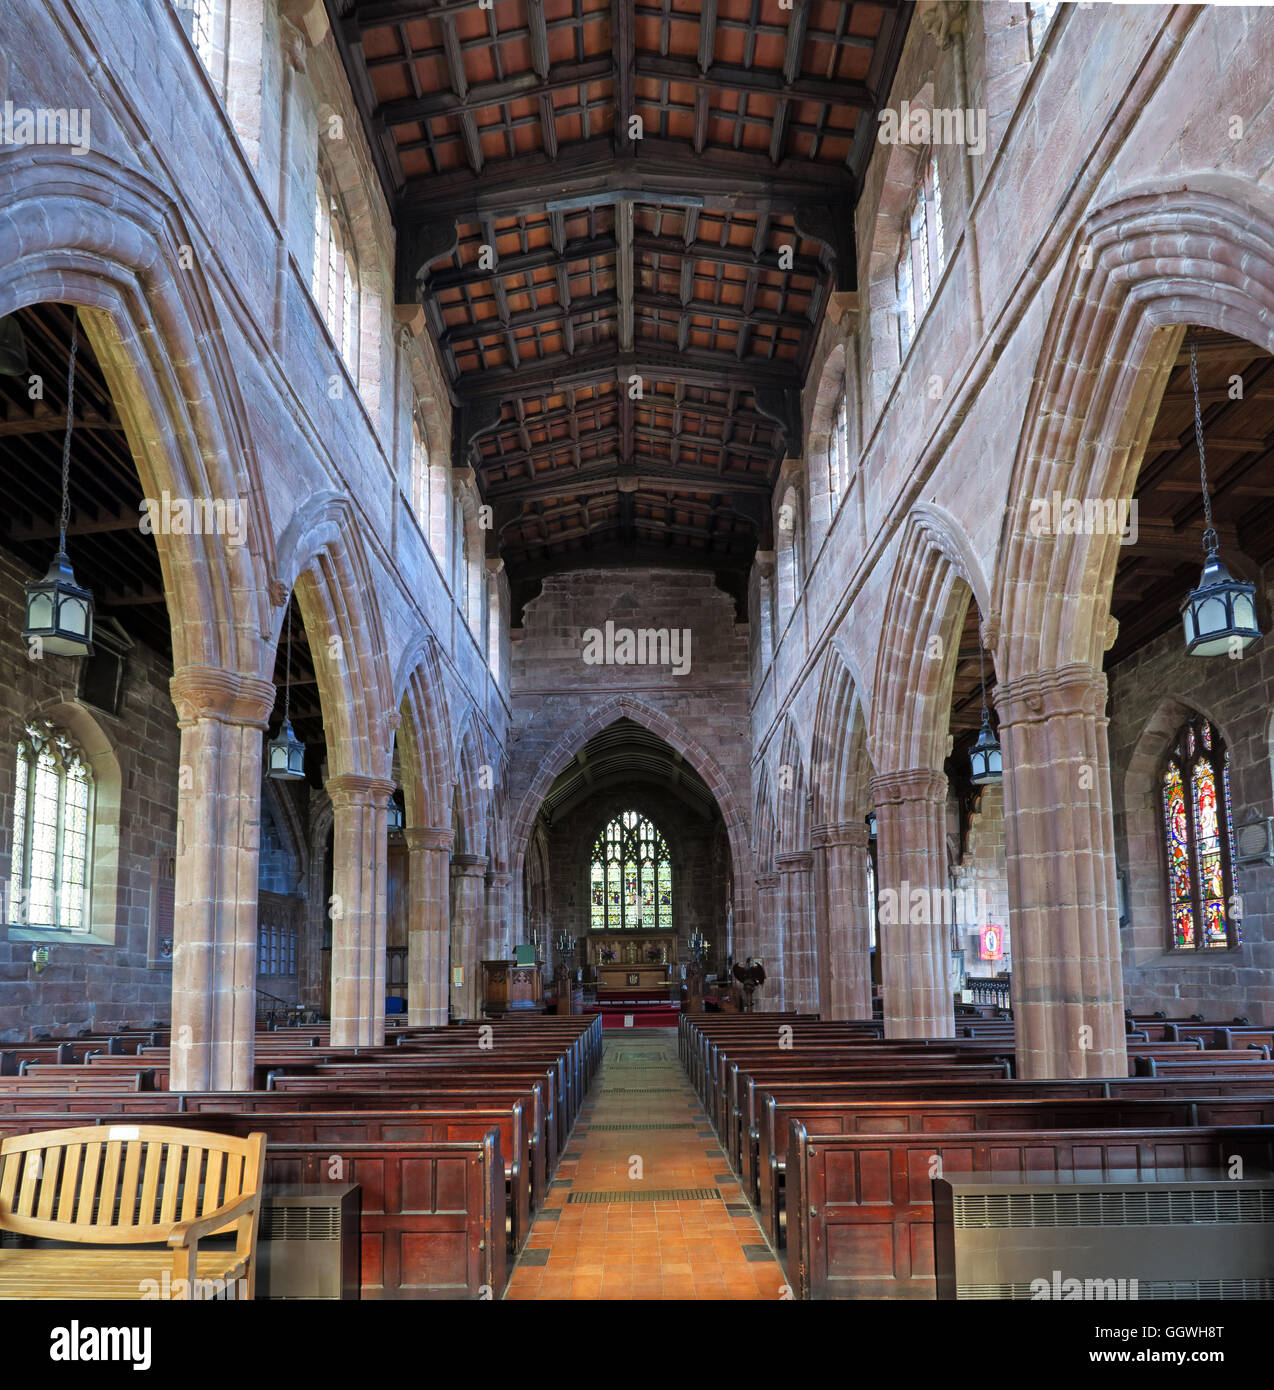 St Marys & All Saints Church Gt Budworth Interior, Cheshire, England,UK - view to altar - Stock Image